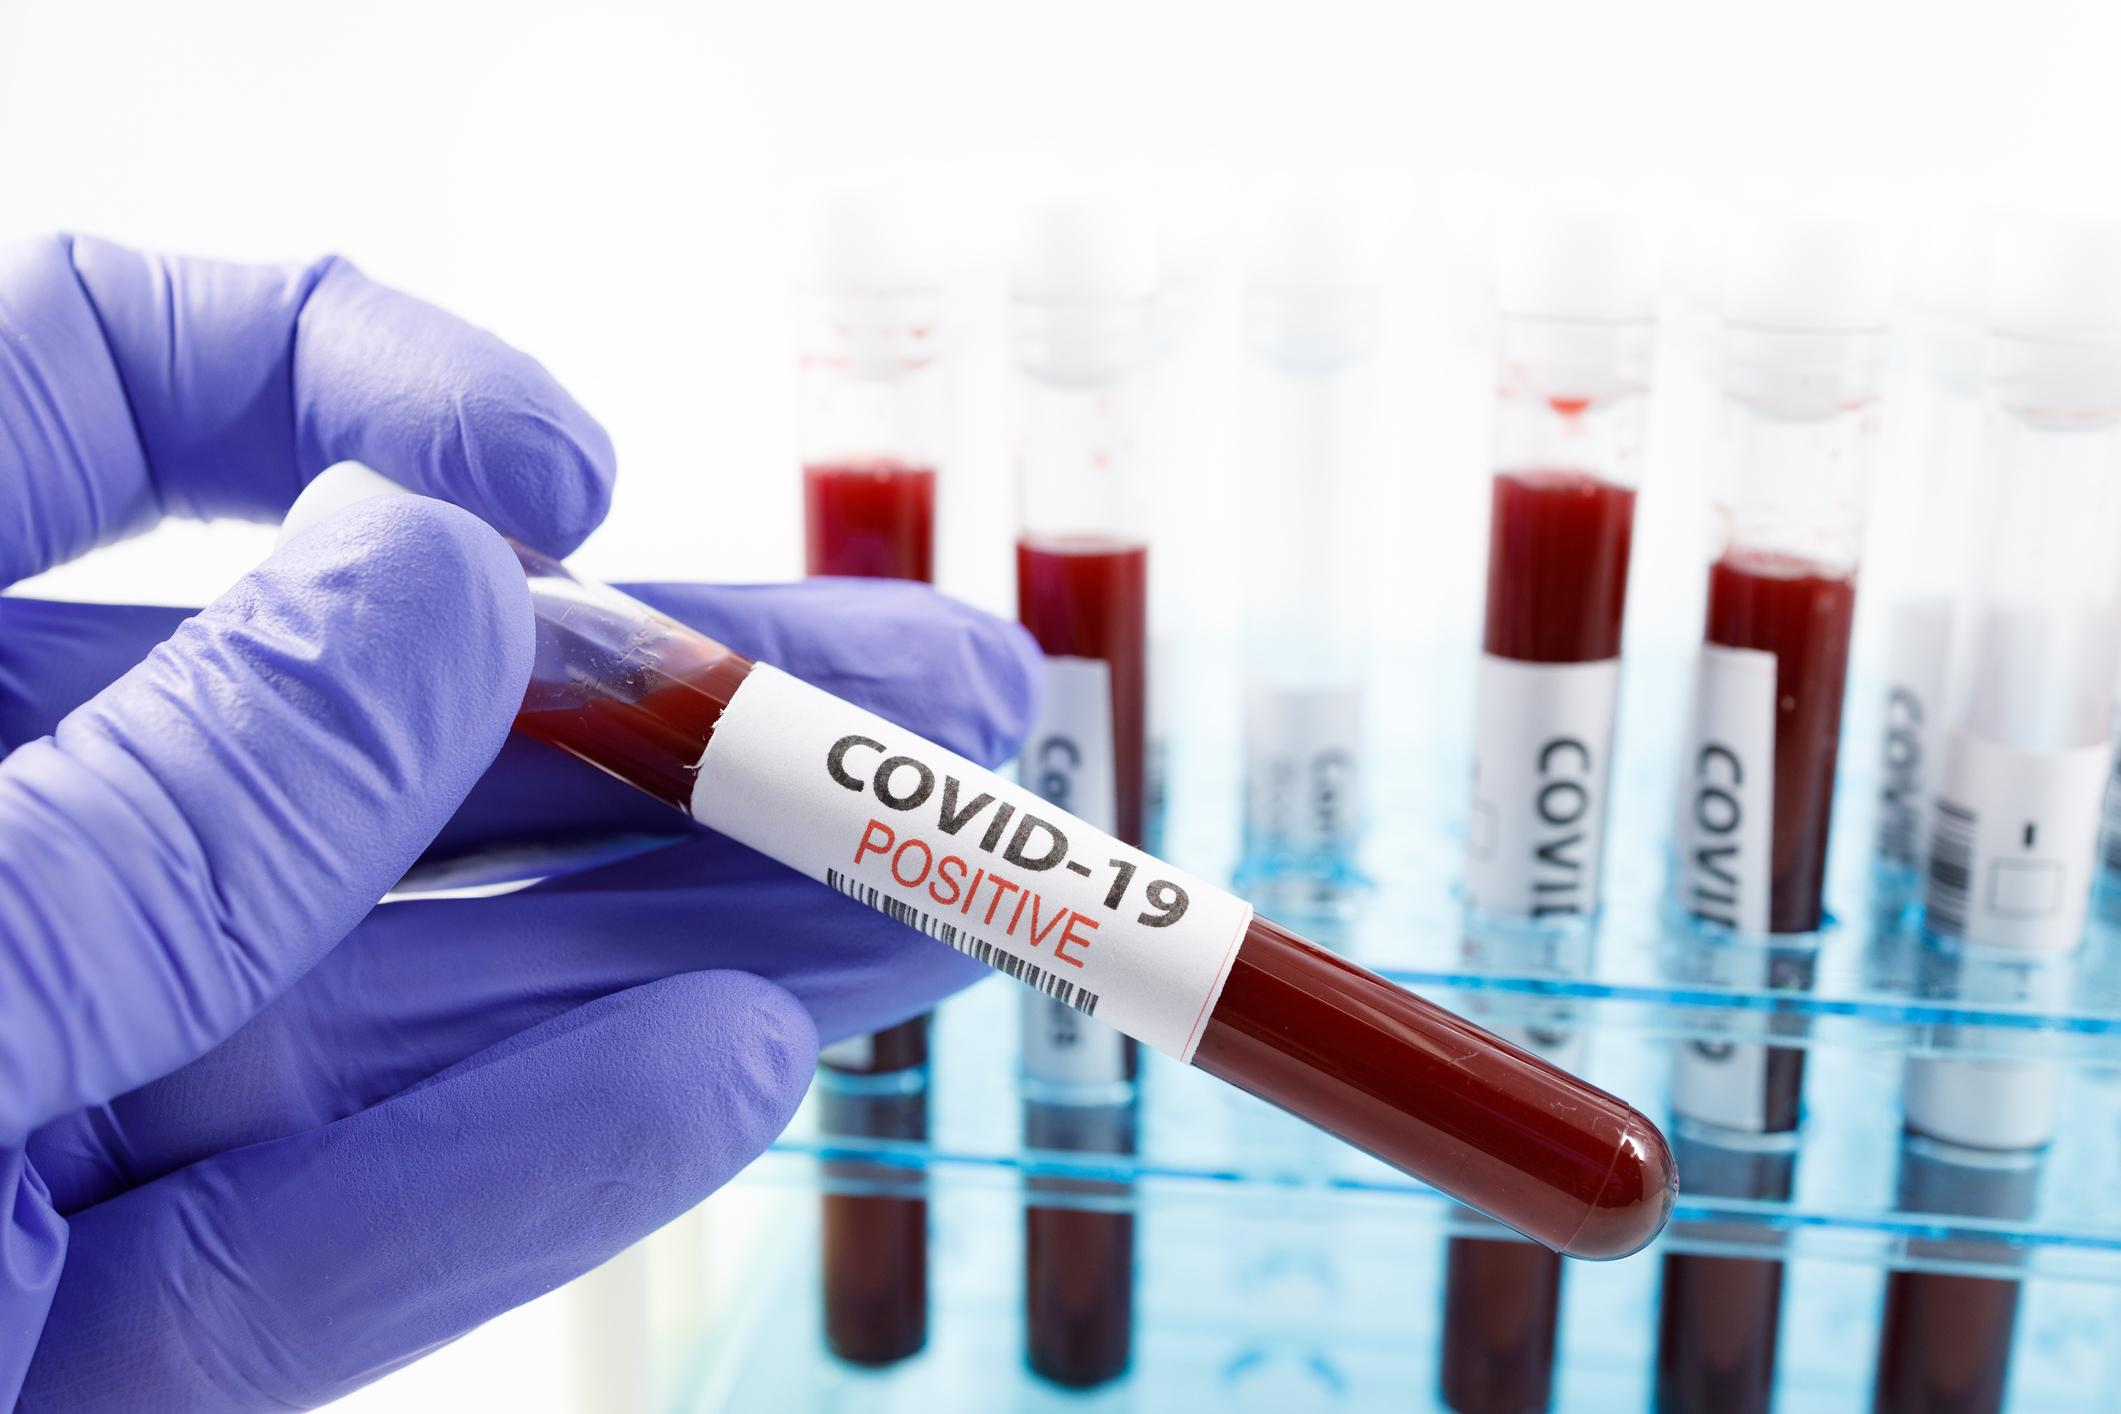 AM800-News-COVID-19-Coronavirus-Testing-Gloves-Positive Test